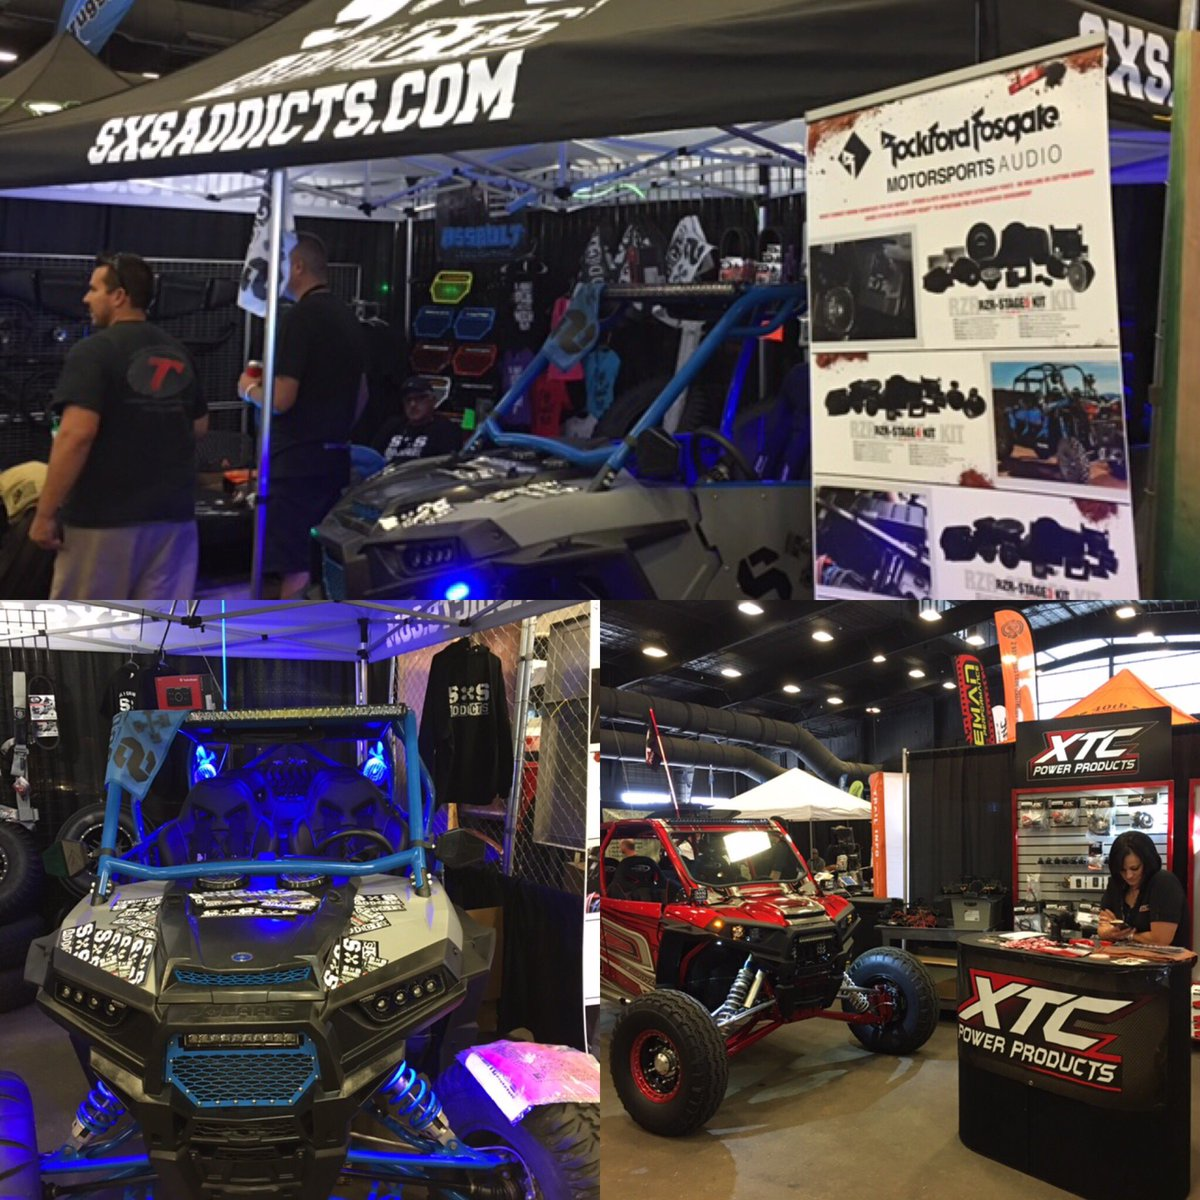 Rockford Fosgate On Twitter Come By RideNowPwrsprts Booth During - Westworld scottsdale car show